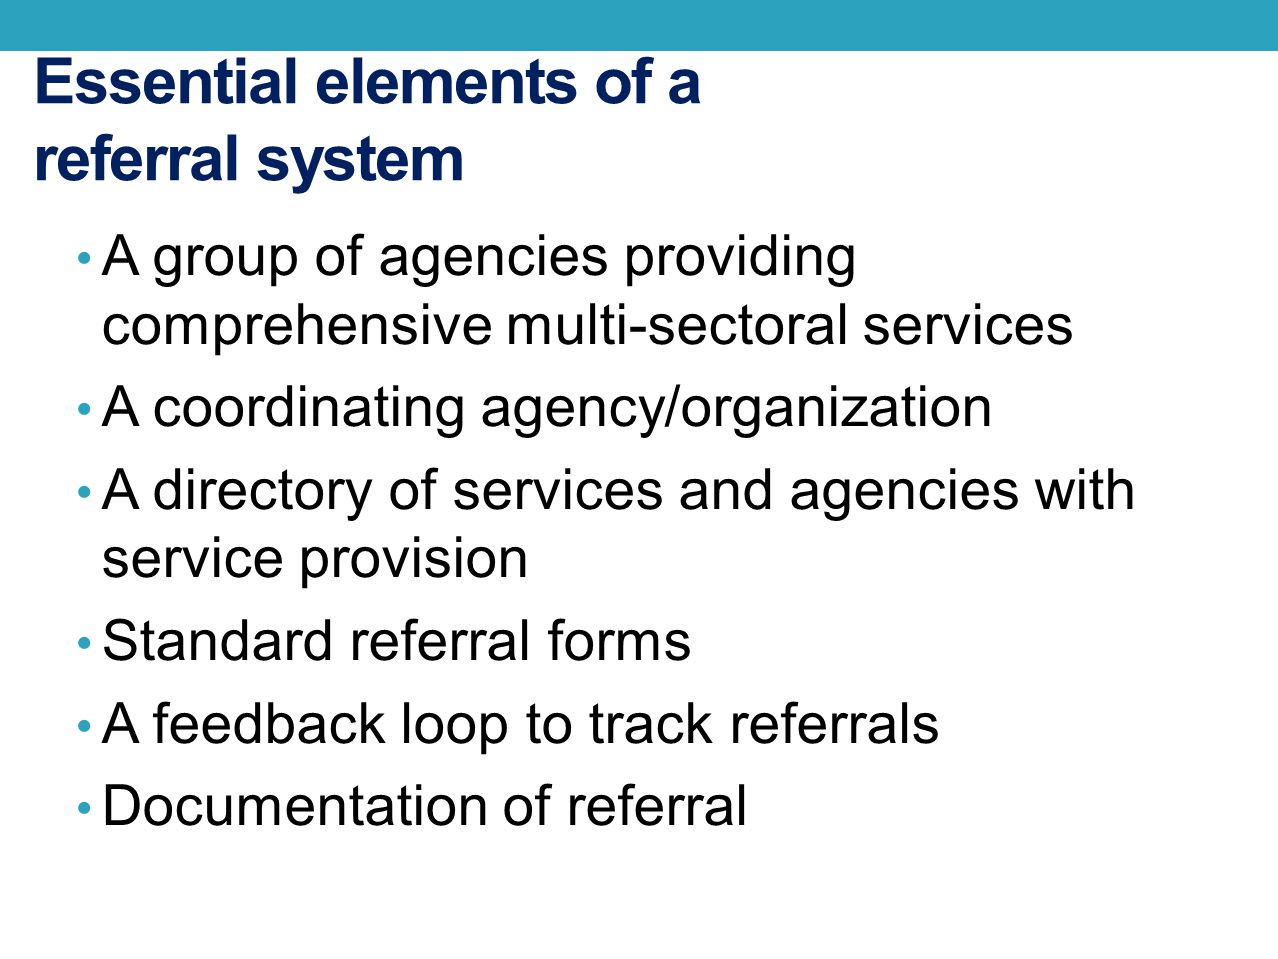 Essential elements of a referral system